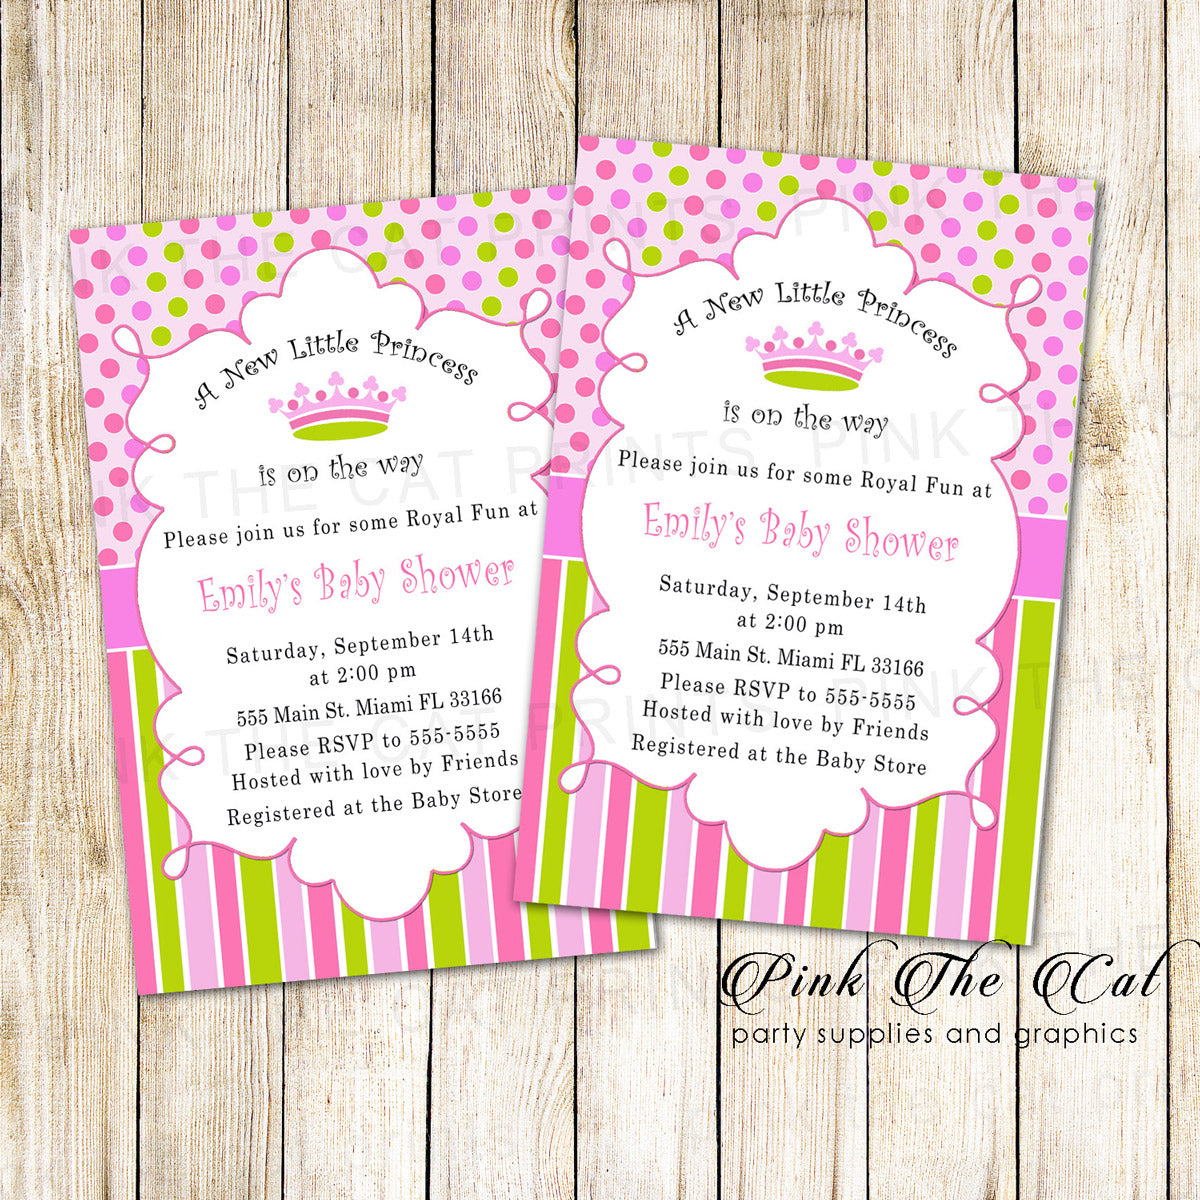 New Little Princess Baby Shower Invitation Card Pink Green